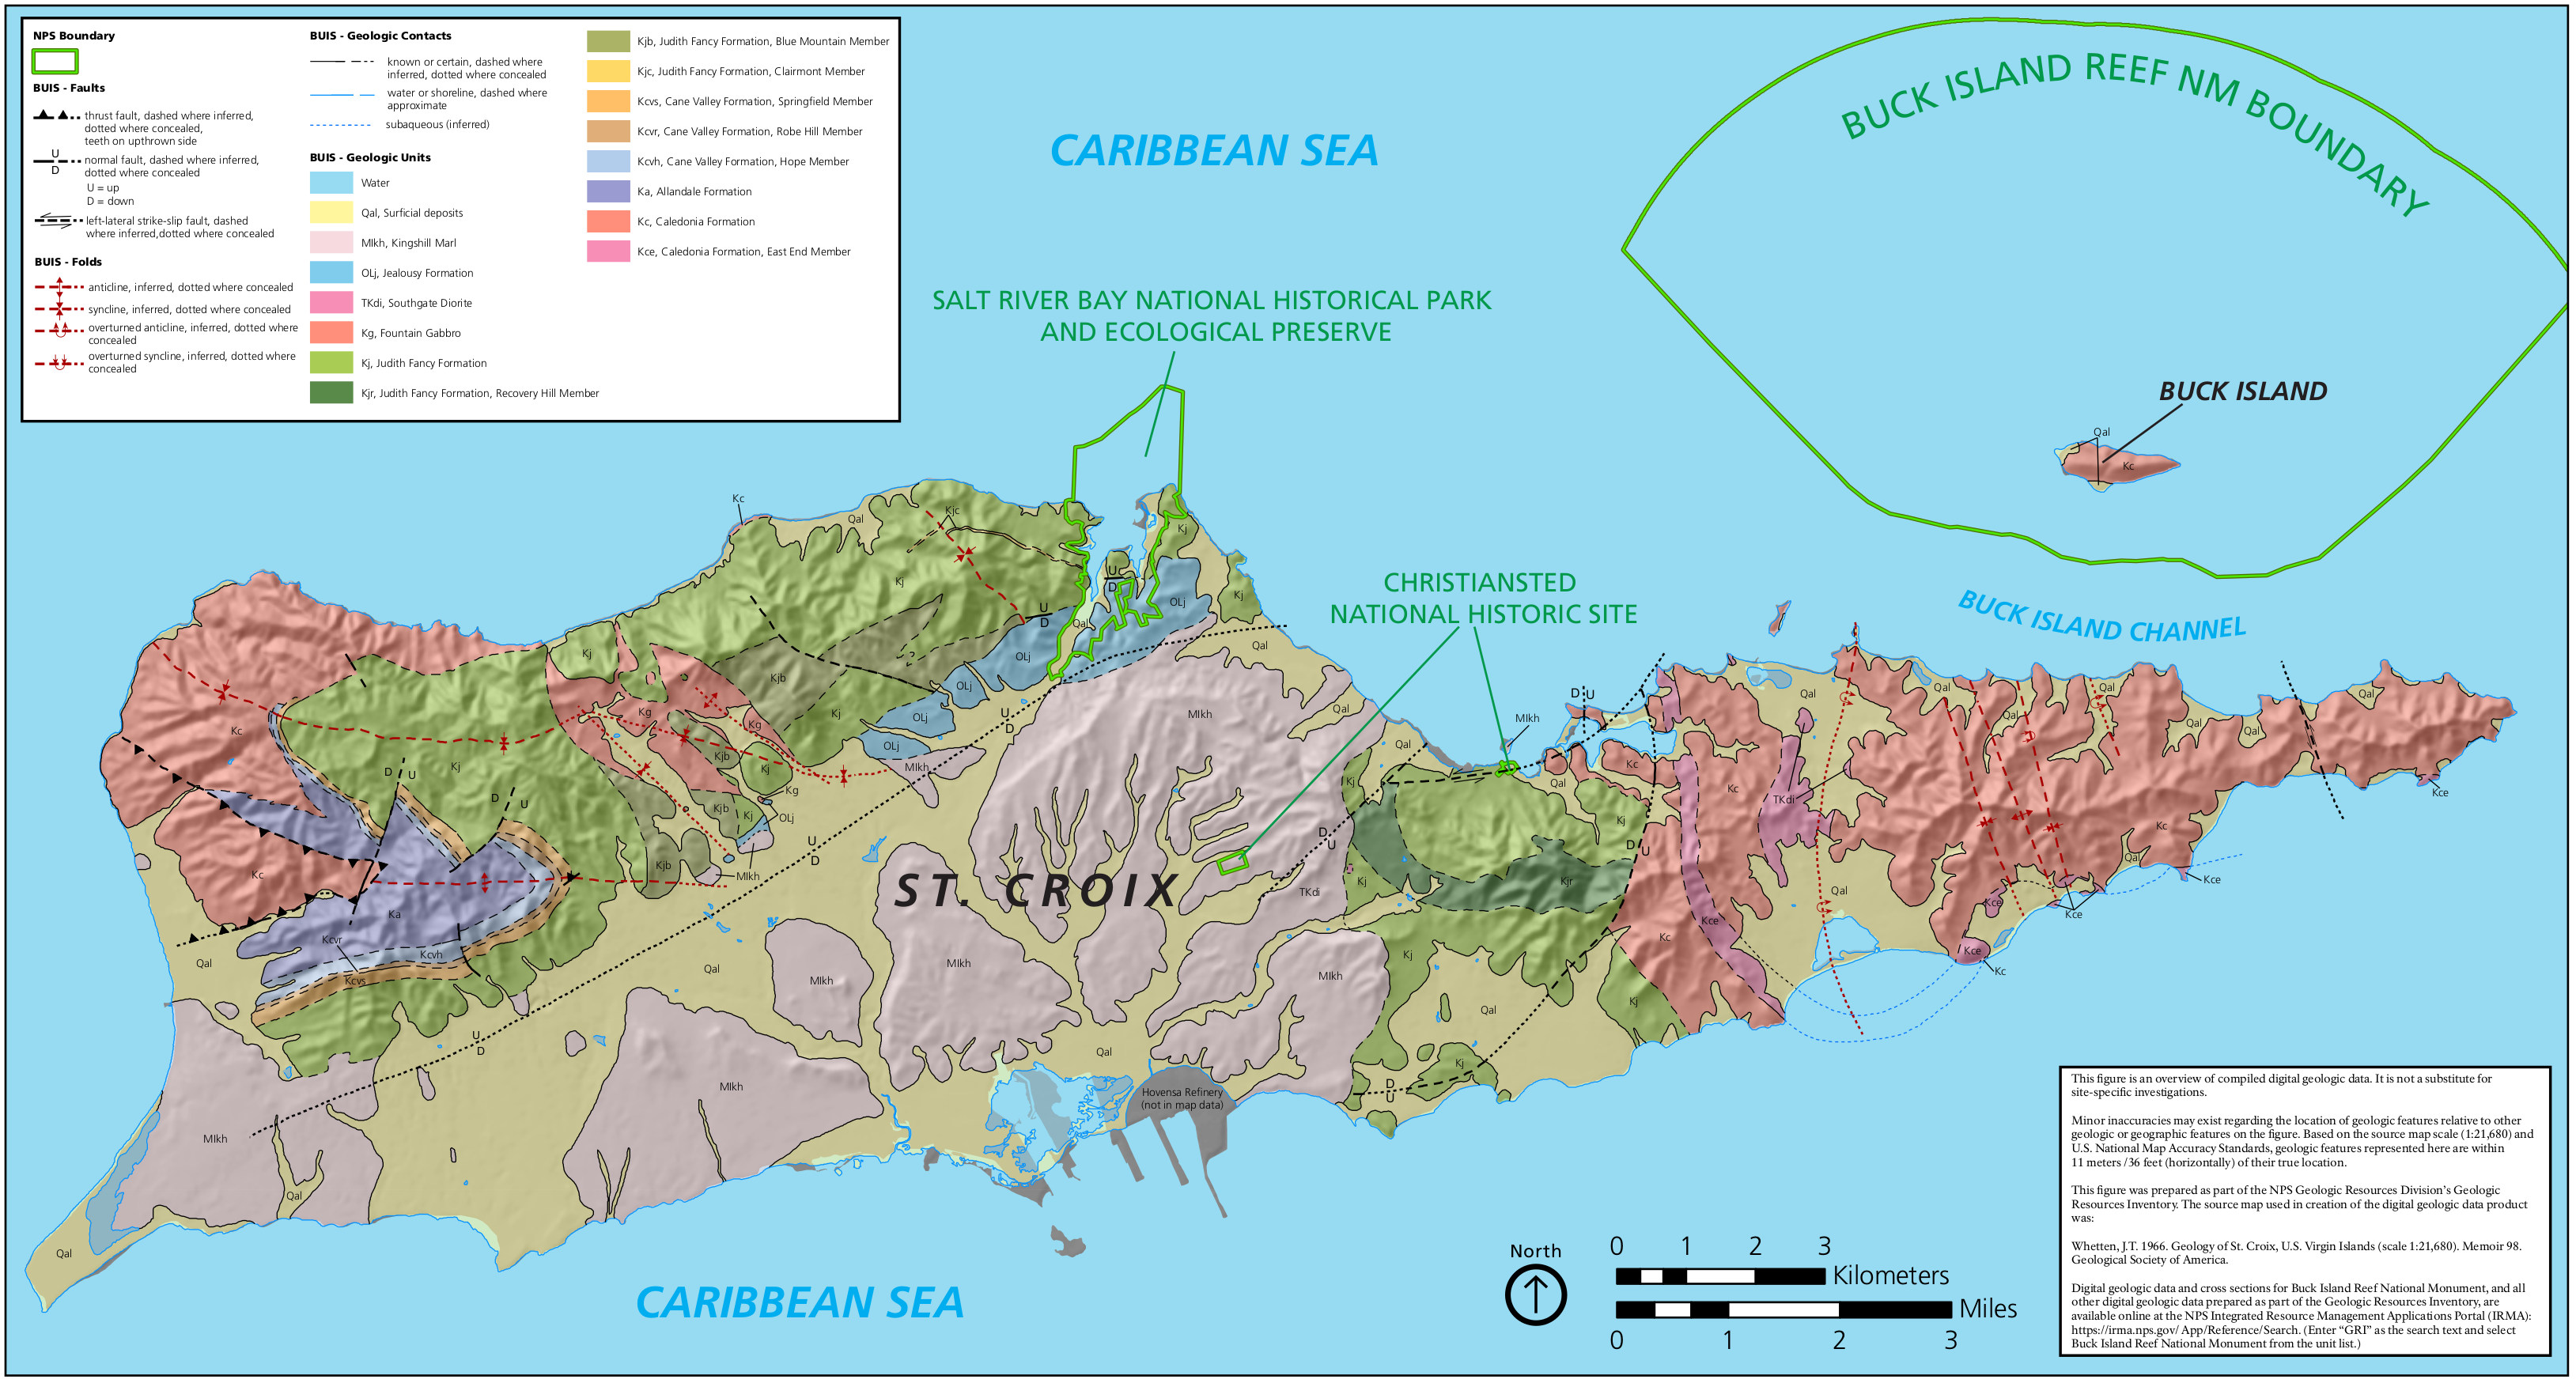 Virgin Islands Maps | NPMaps.com - just free maps, period. on map of haiti, map of bermuda, map of cuba, map of the northern hemisphere, map of the americas, map of the mediterranean, map of dominican republic, map of grenada, map of the world, map of the virgin islands, map of kenya, map of mexico, map of florida, map of belize, map of europe, map of panama, map of jamaica, map of the hawaii islands, map of puerto rico, map of the bahamas islands,